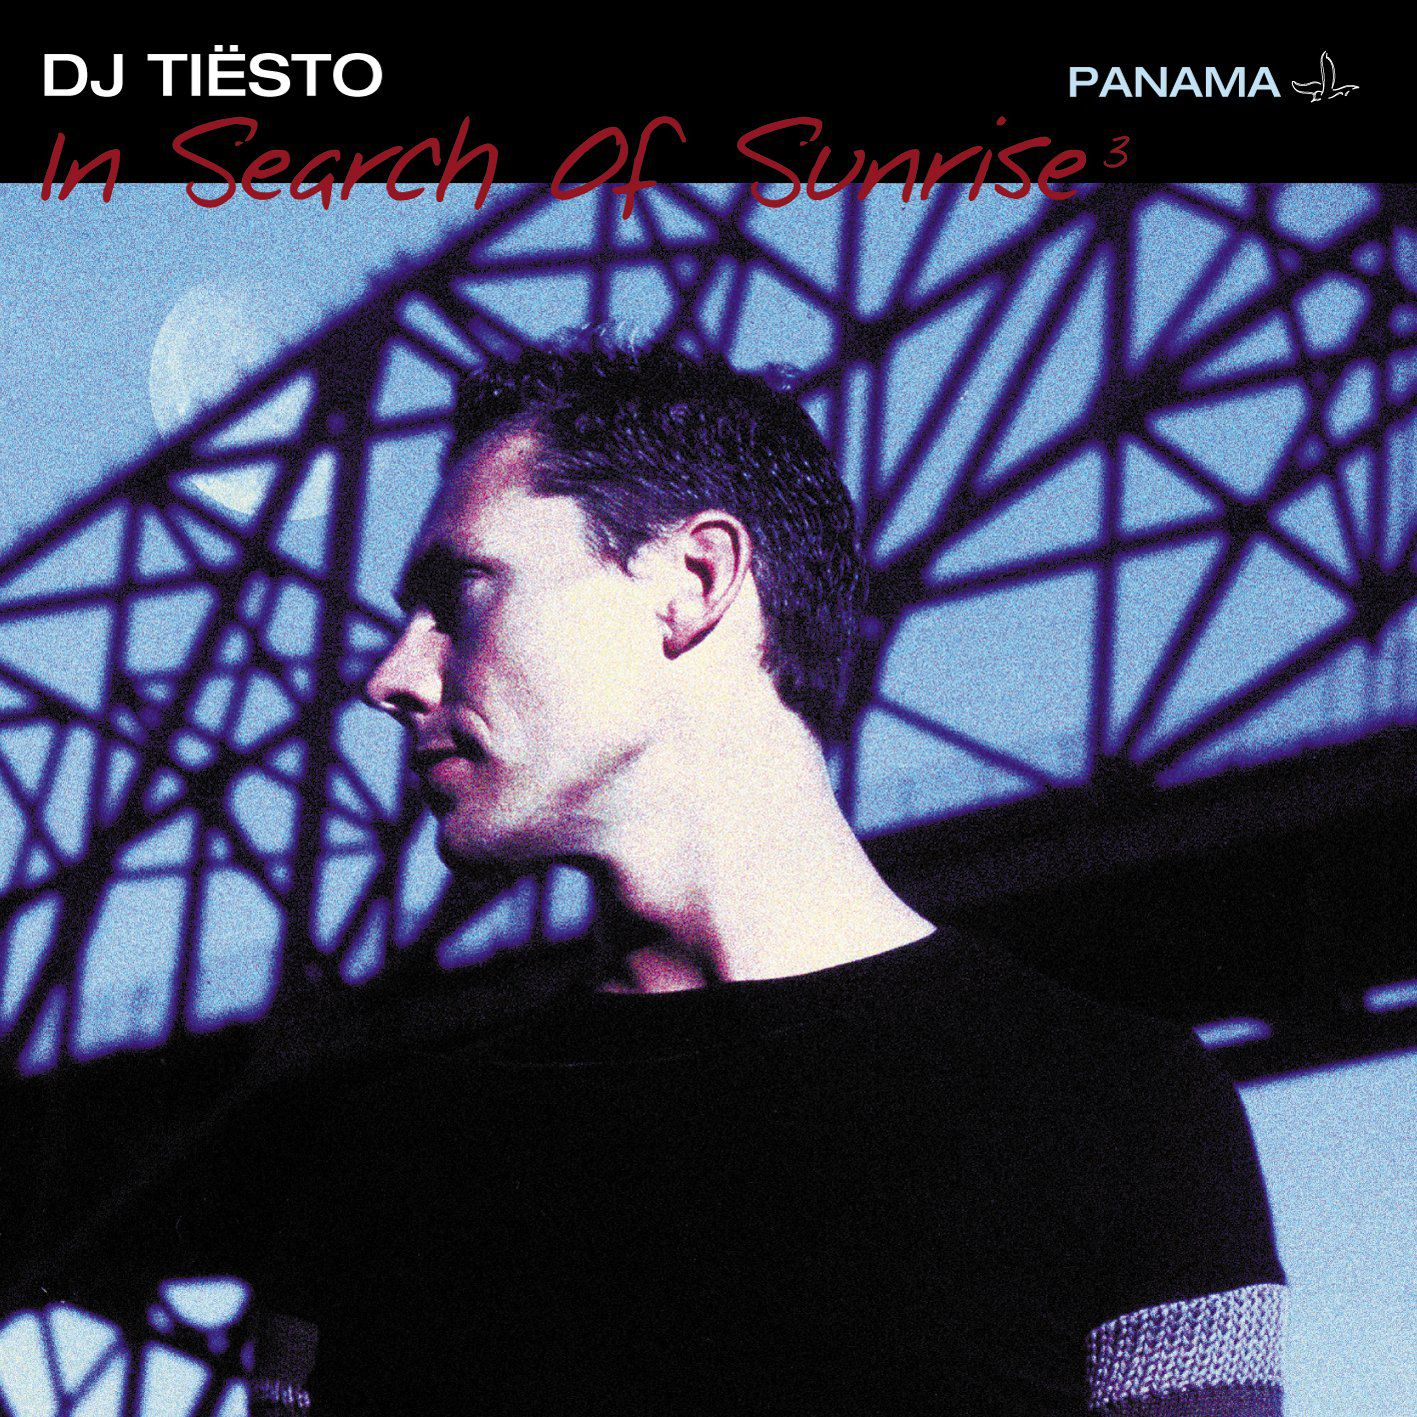 Tiësto compilation: In Search of Sunrise 3 mix, tracklist, album, track, sigle, remix, isos 3